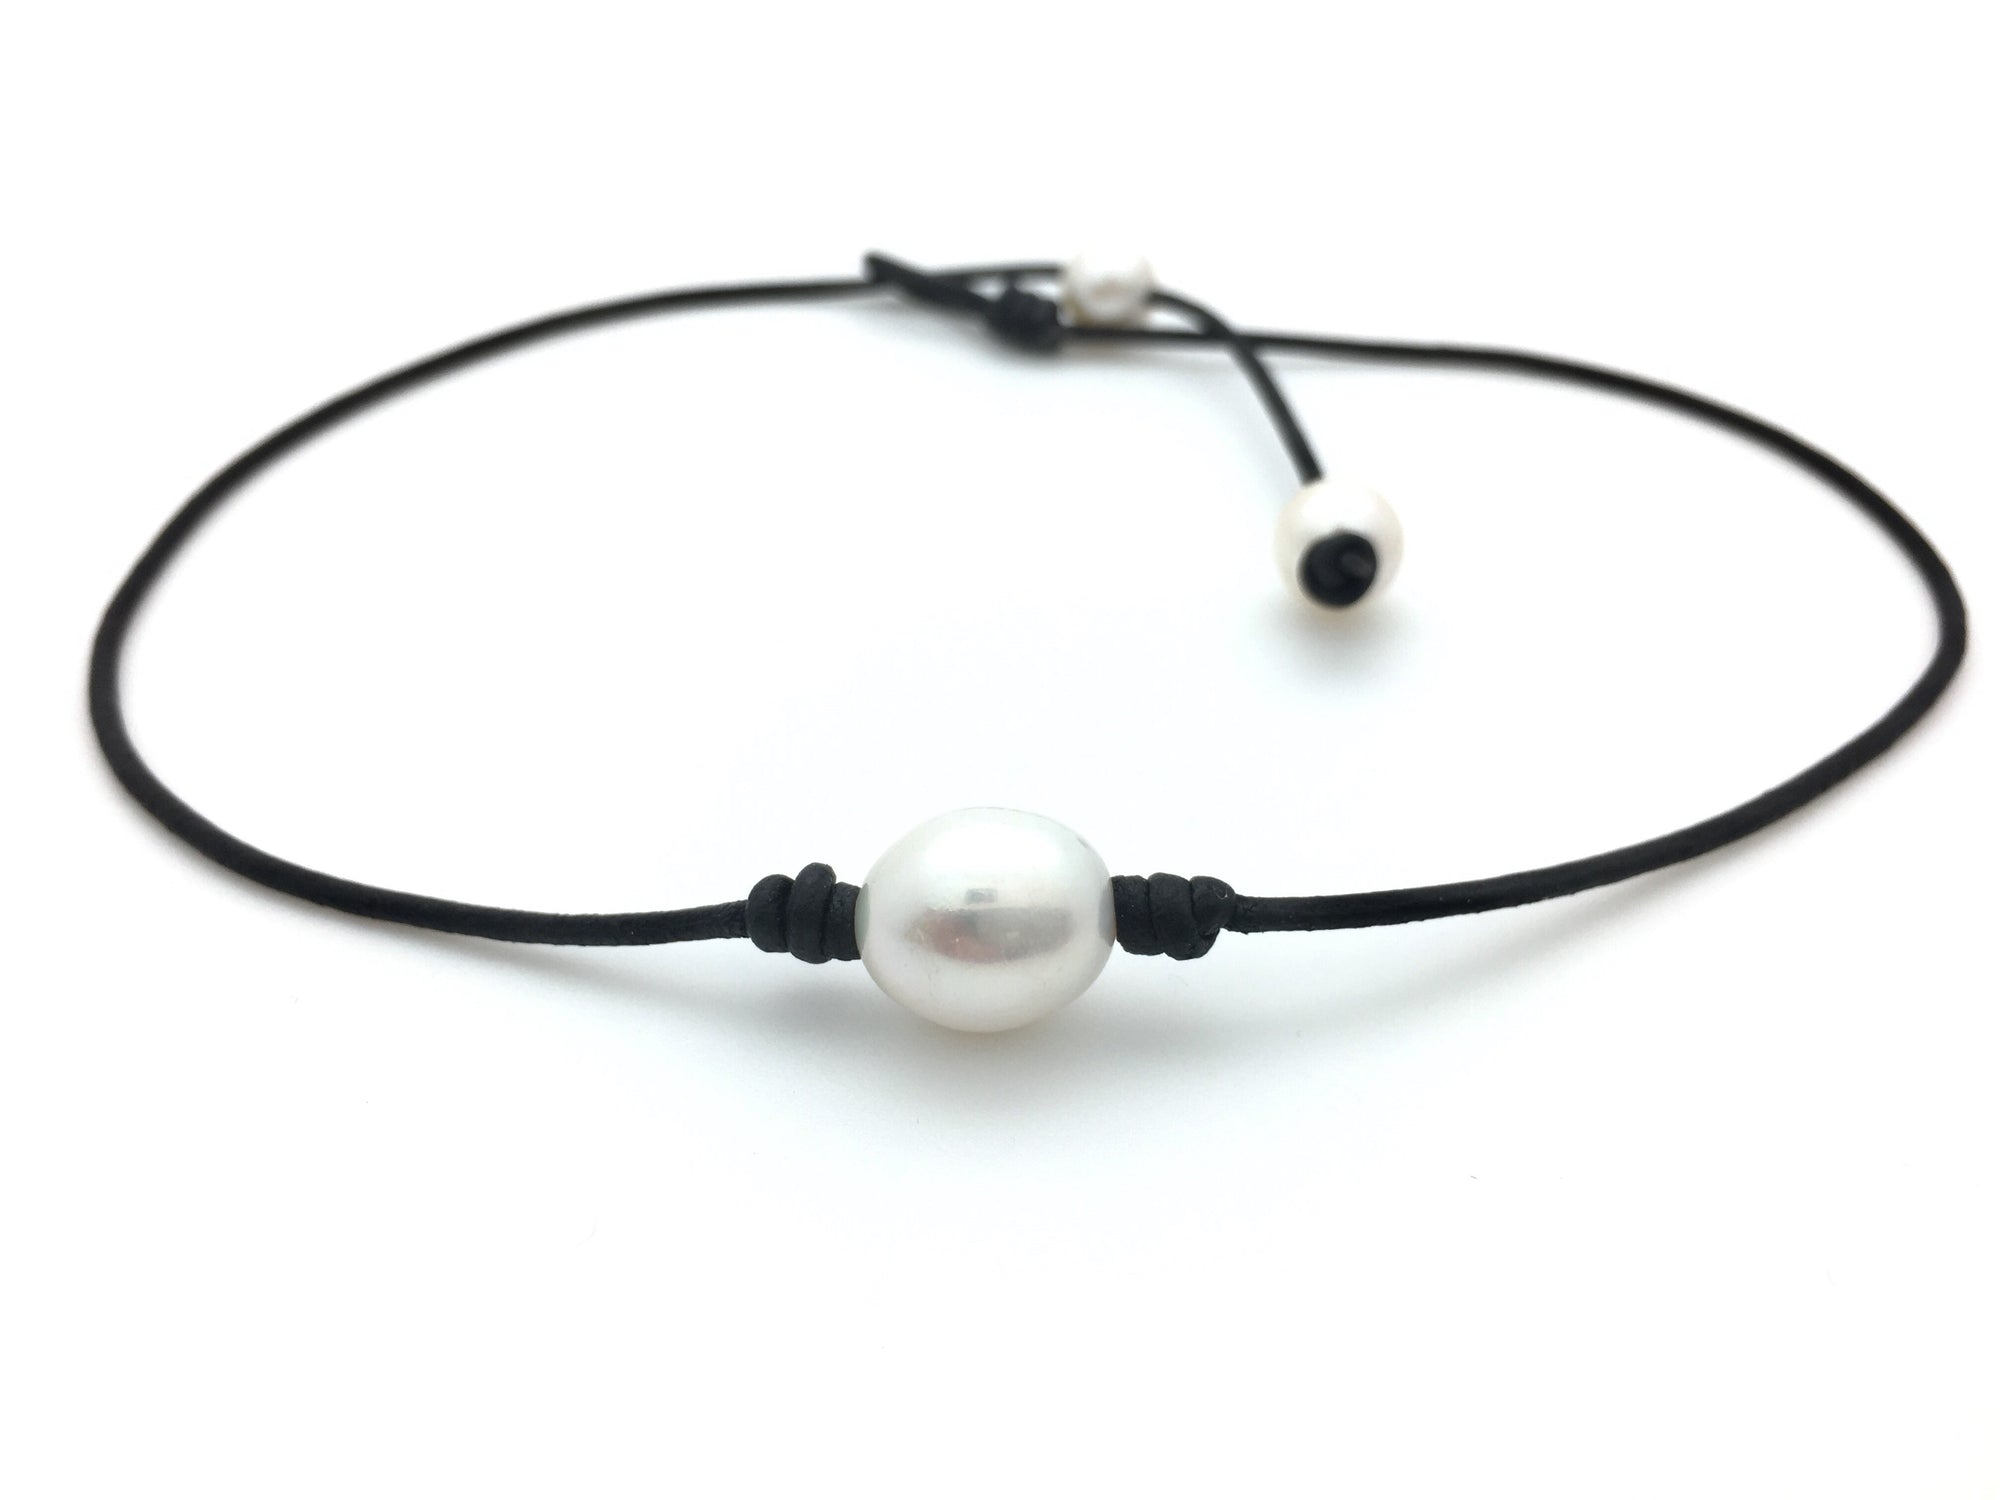 dp single jewelry for pearl black g women necklace leather handmade amazon choker com barch big white